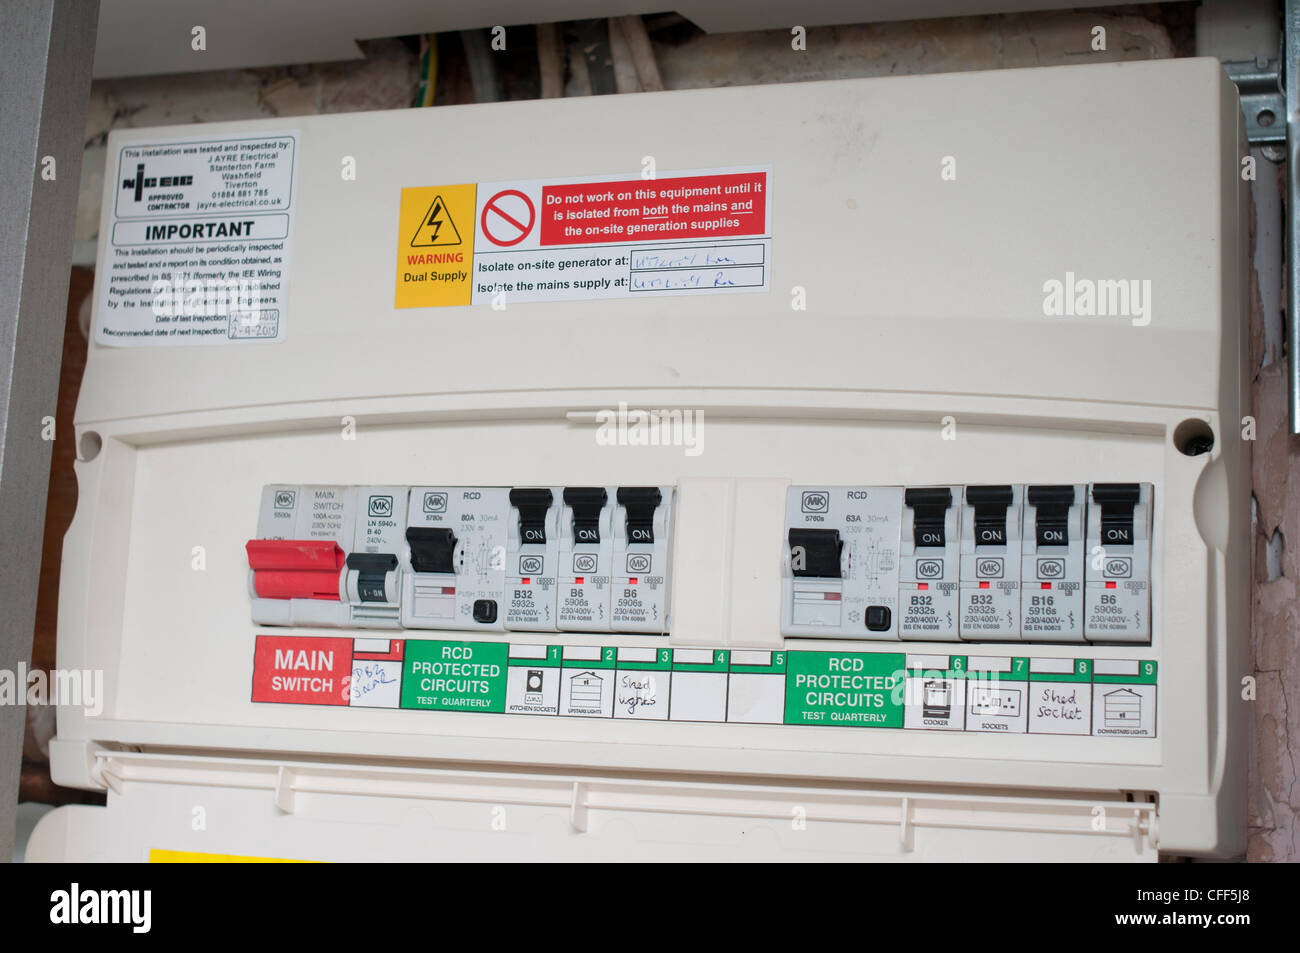 domestic fuse box stock photo 43974288 alamy rh alamy com household fuse box wiring diagram house fuse box